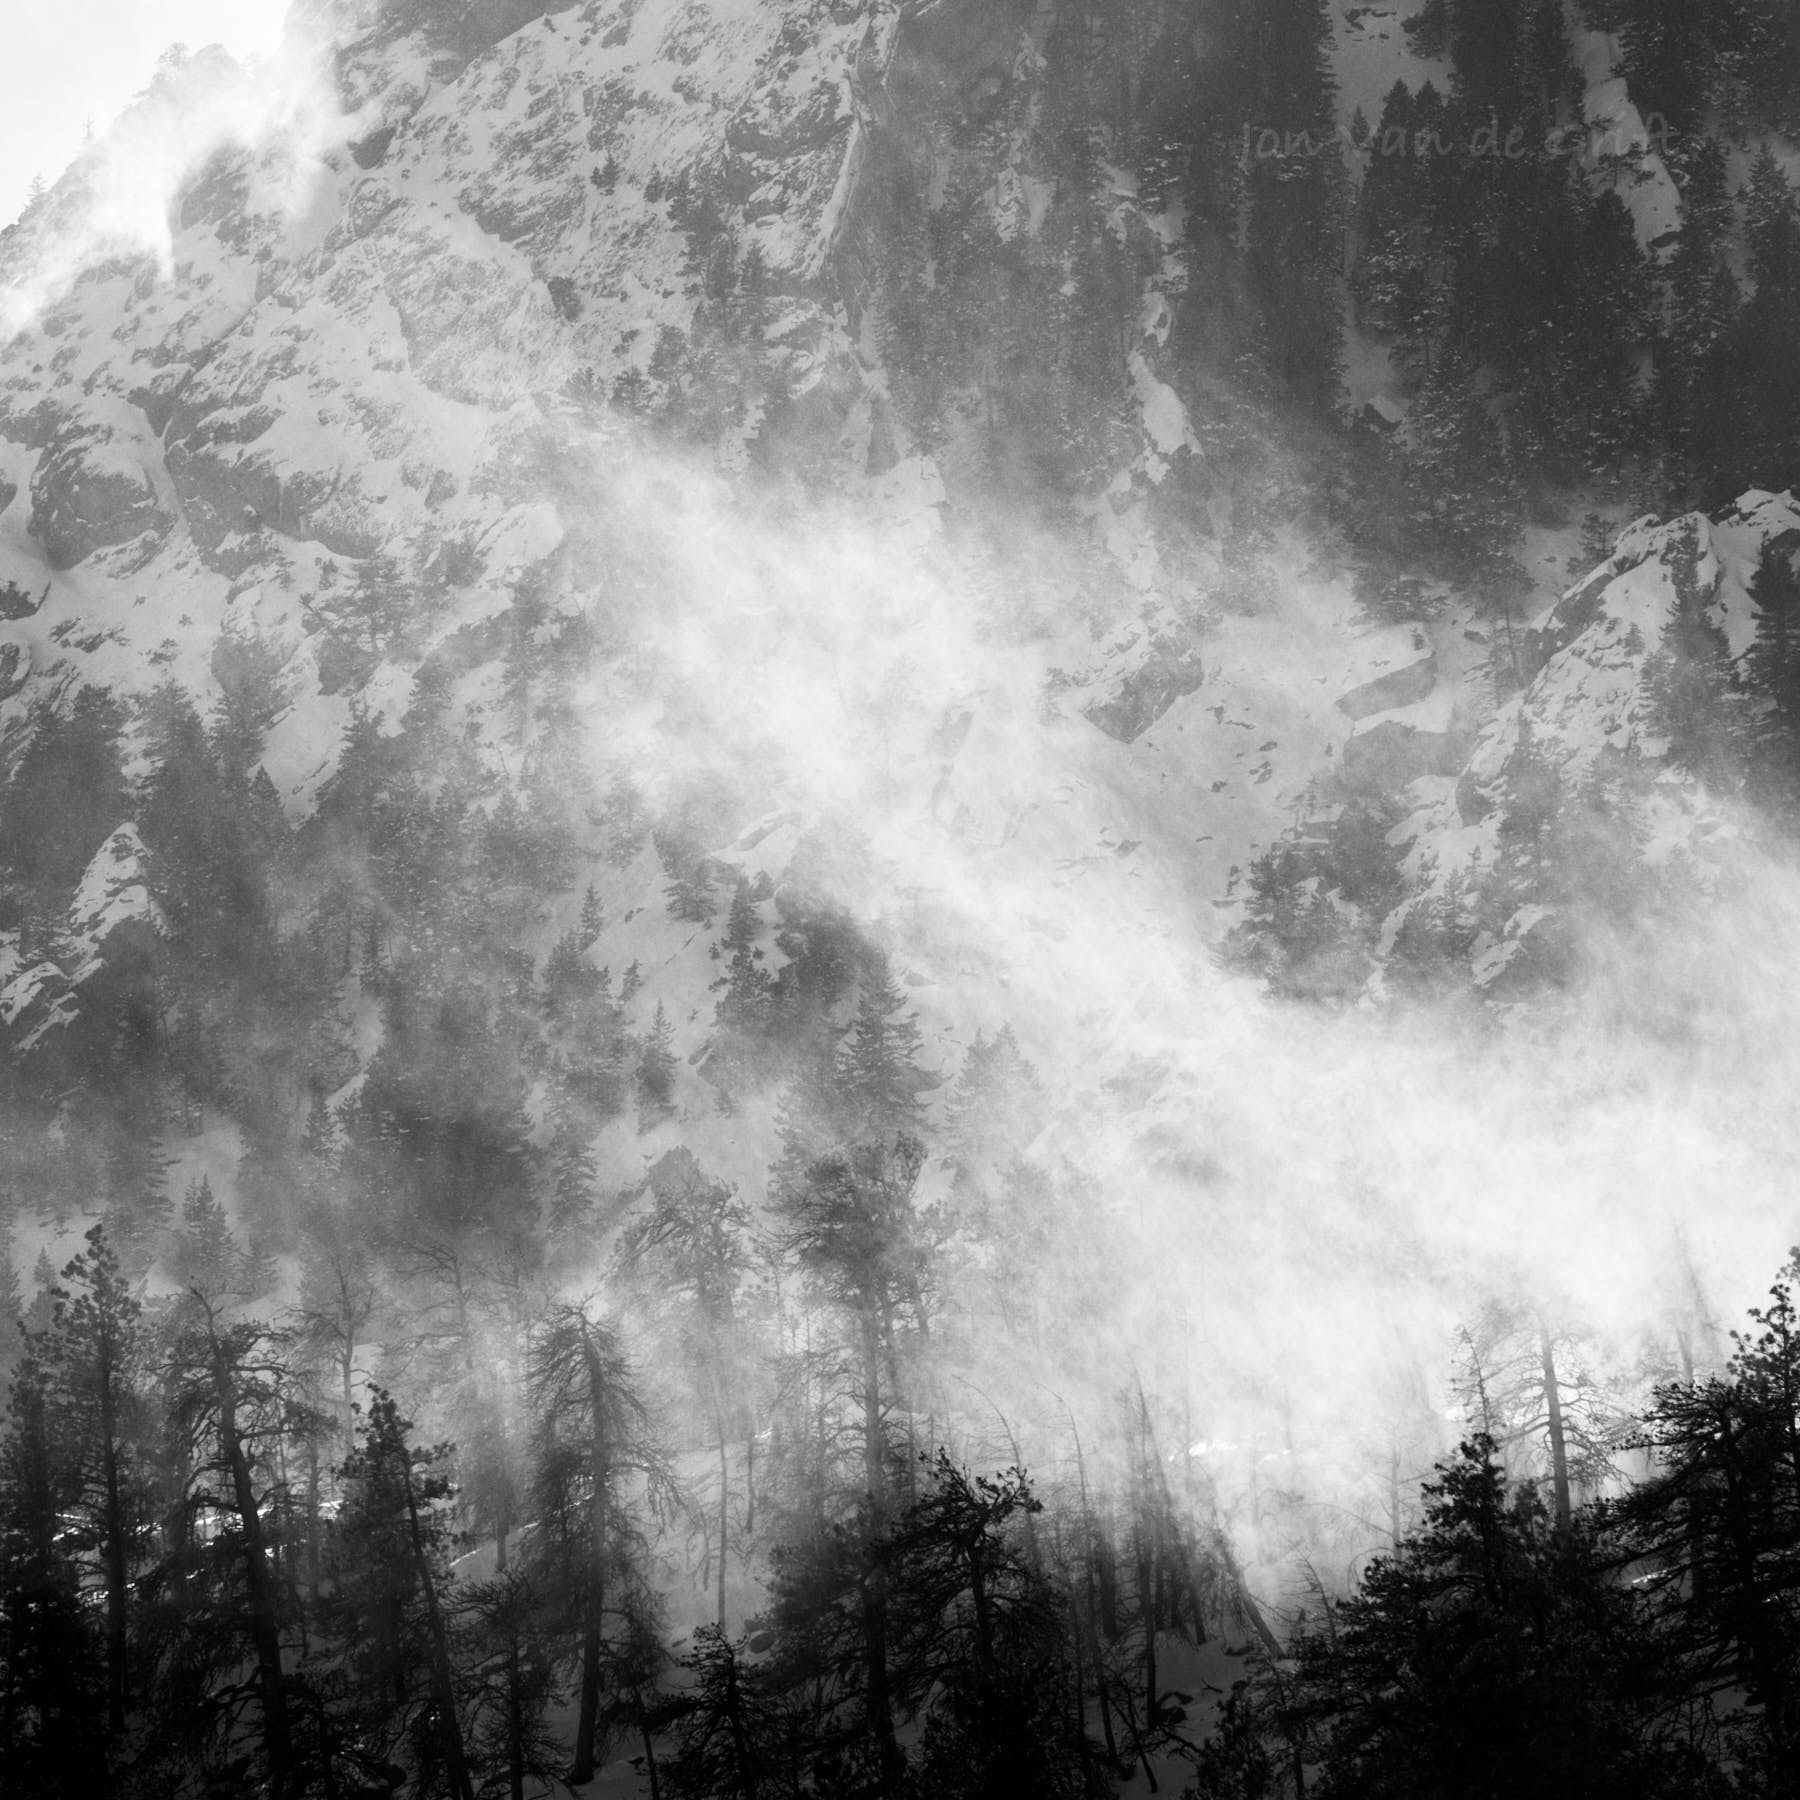 Black and white photograph of a ground blizzard in a mountain range during winter.